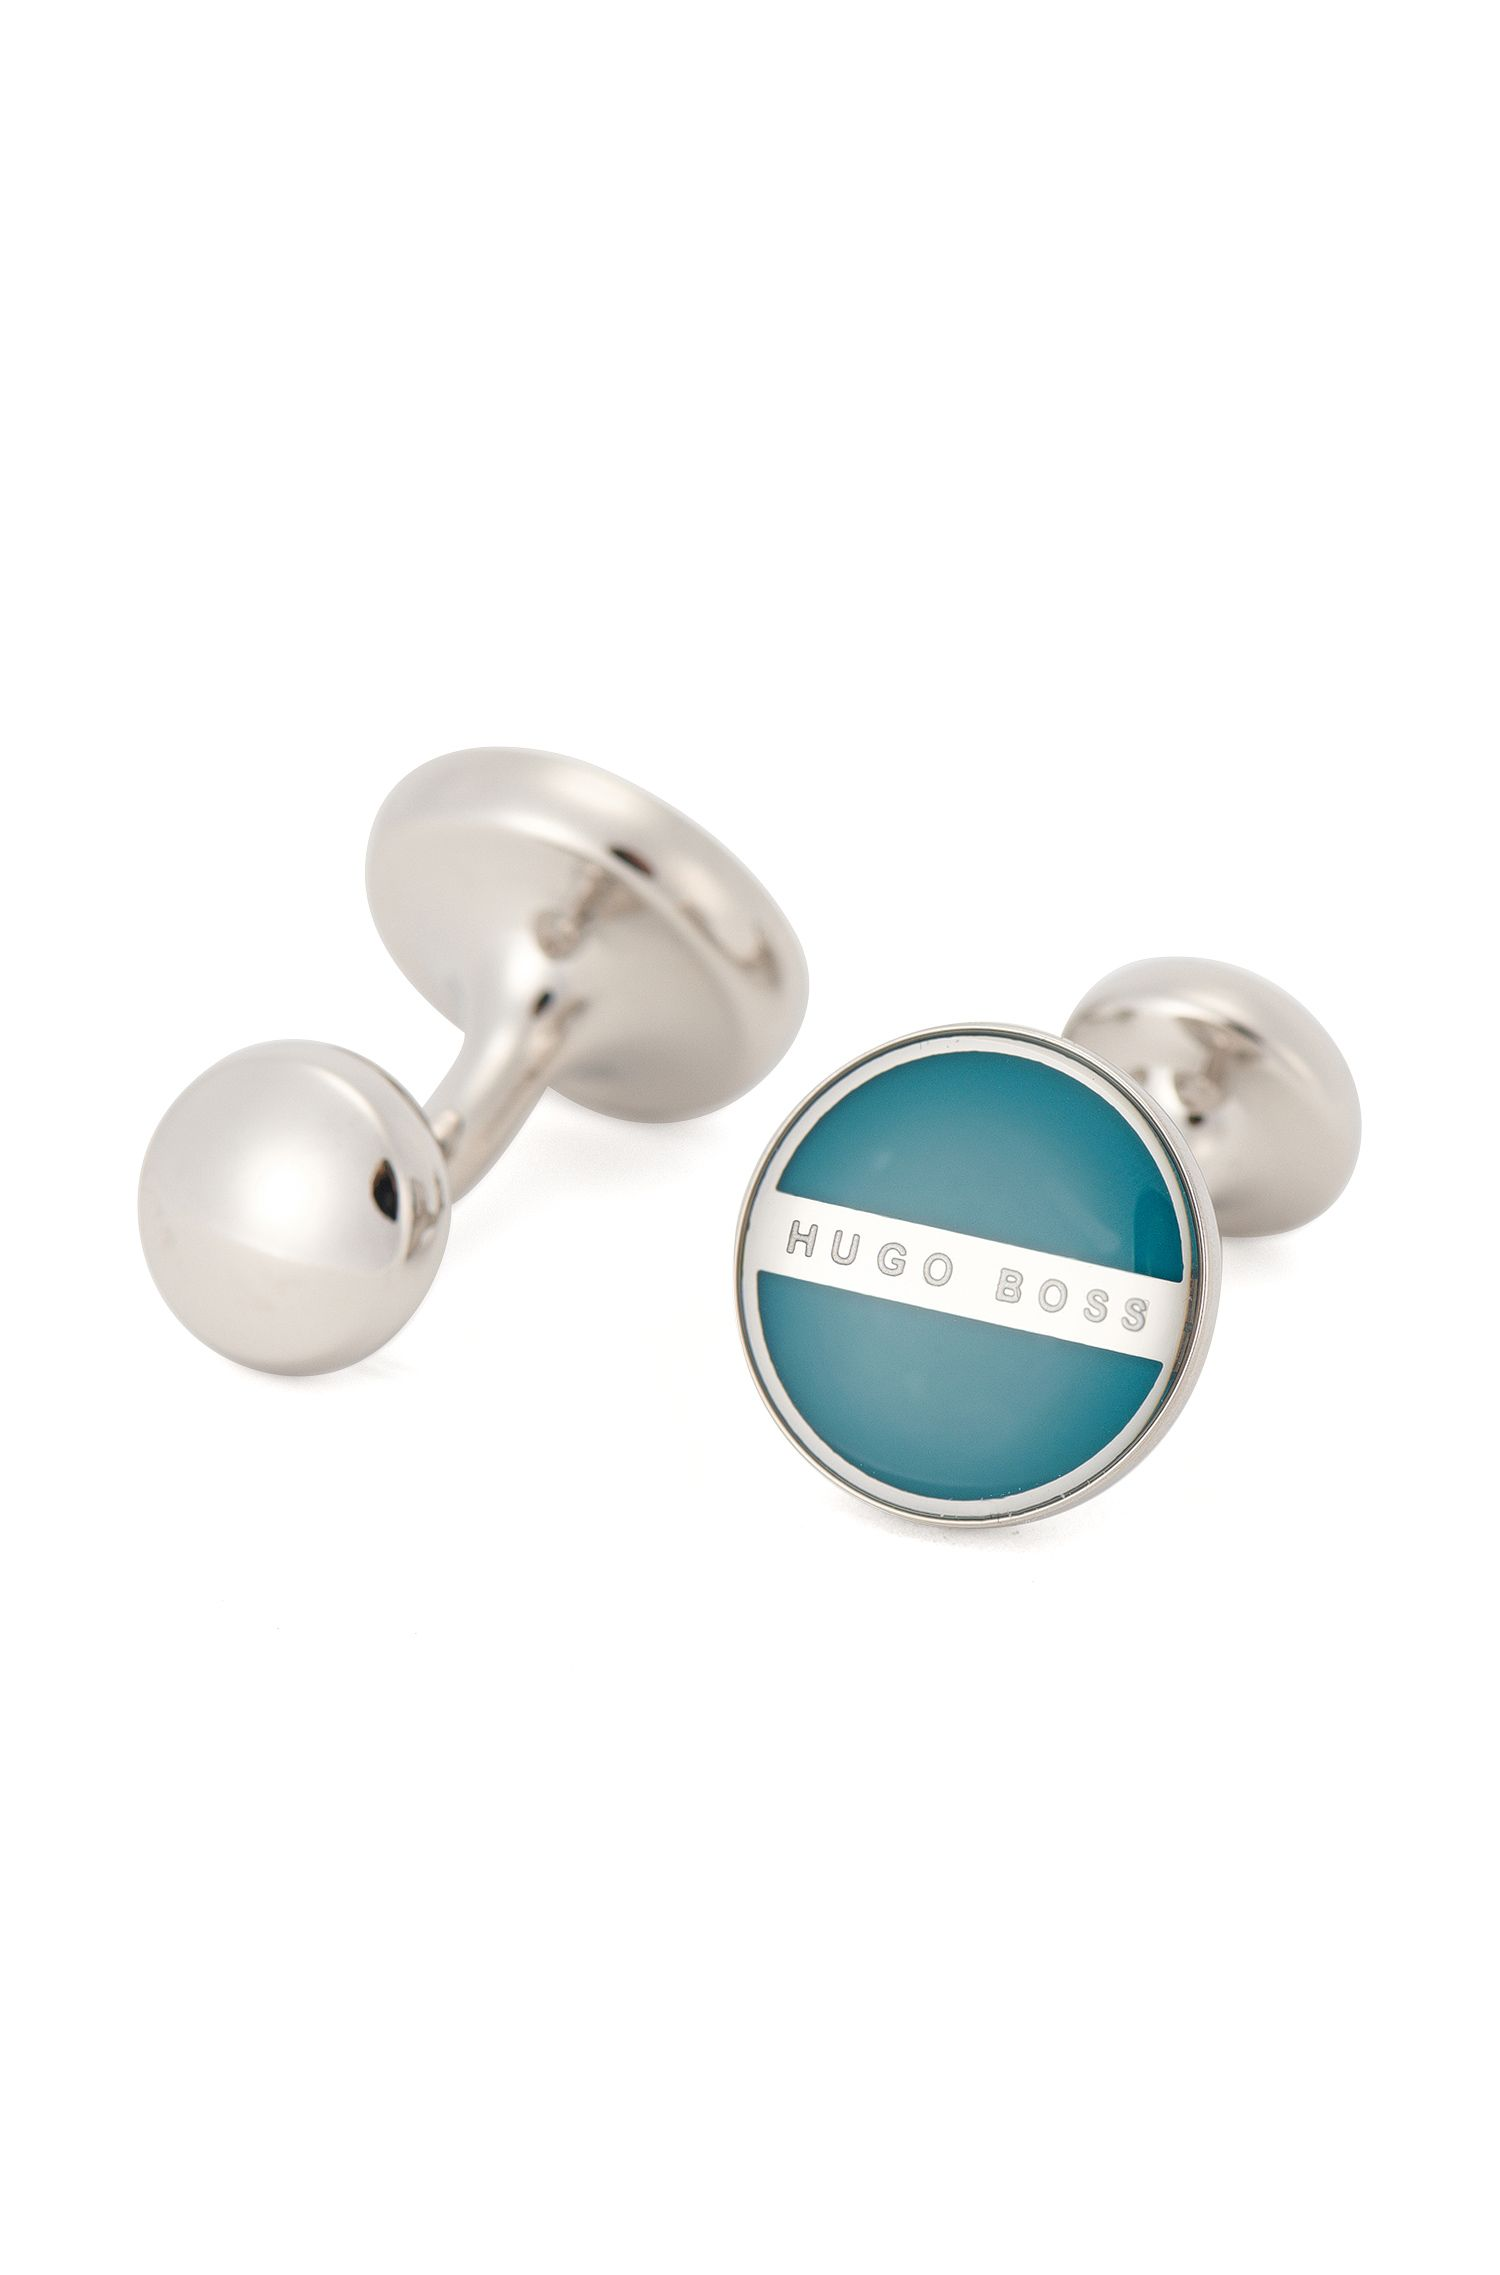 Round cufflinks with enamel core